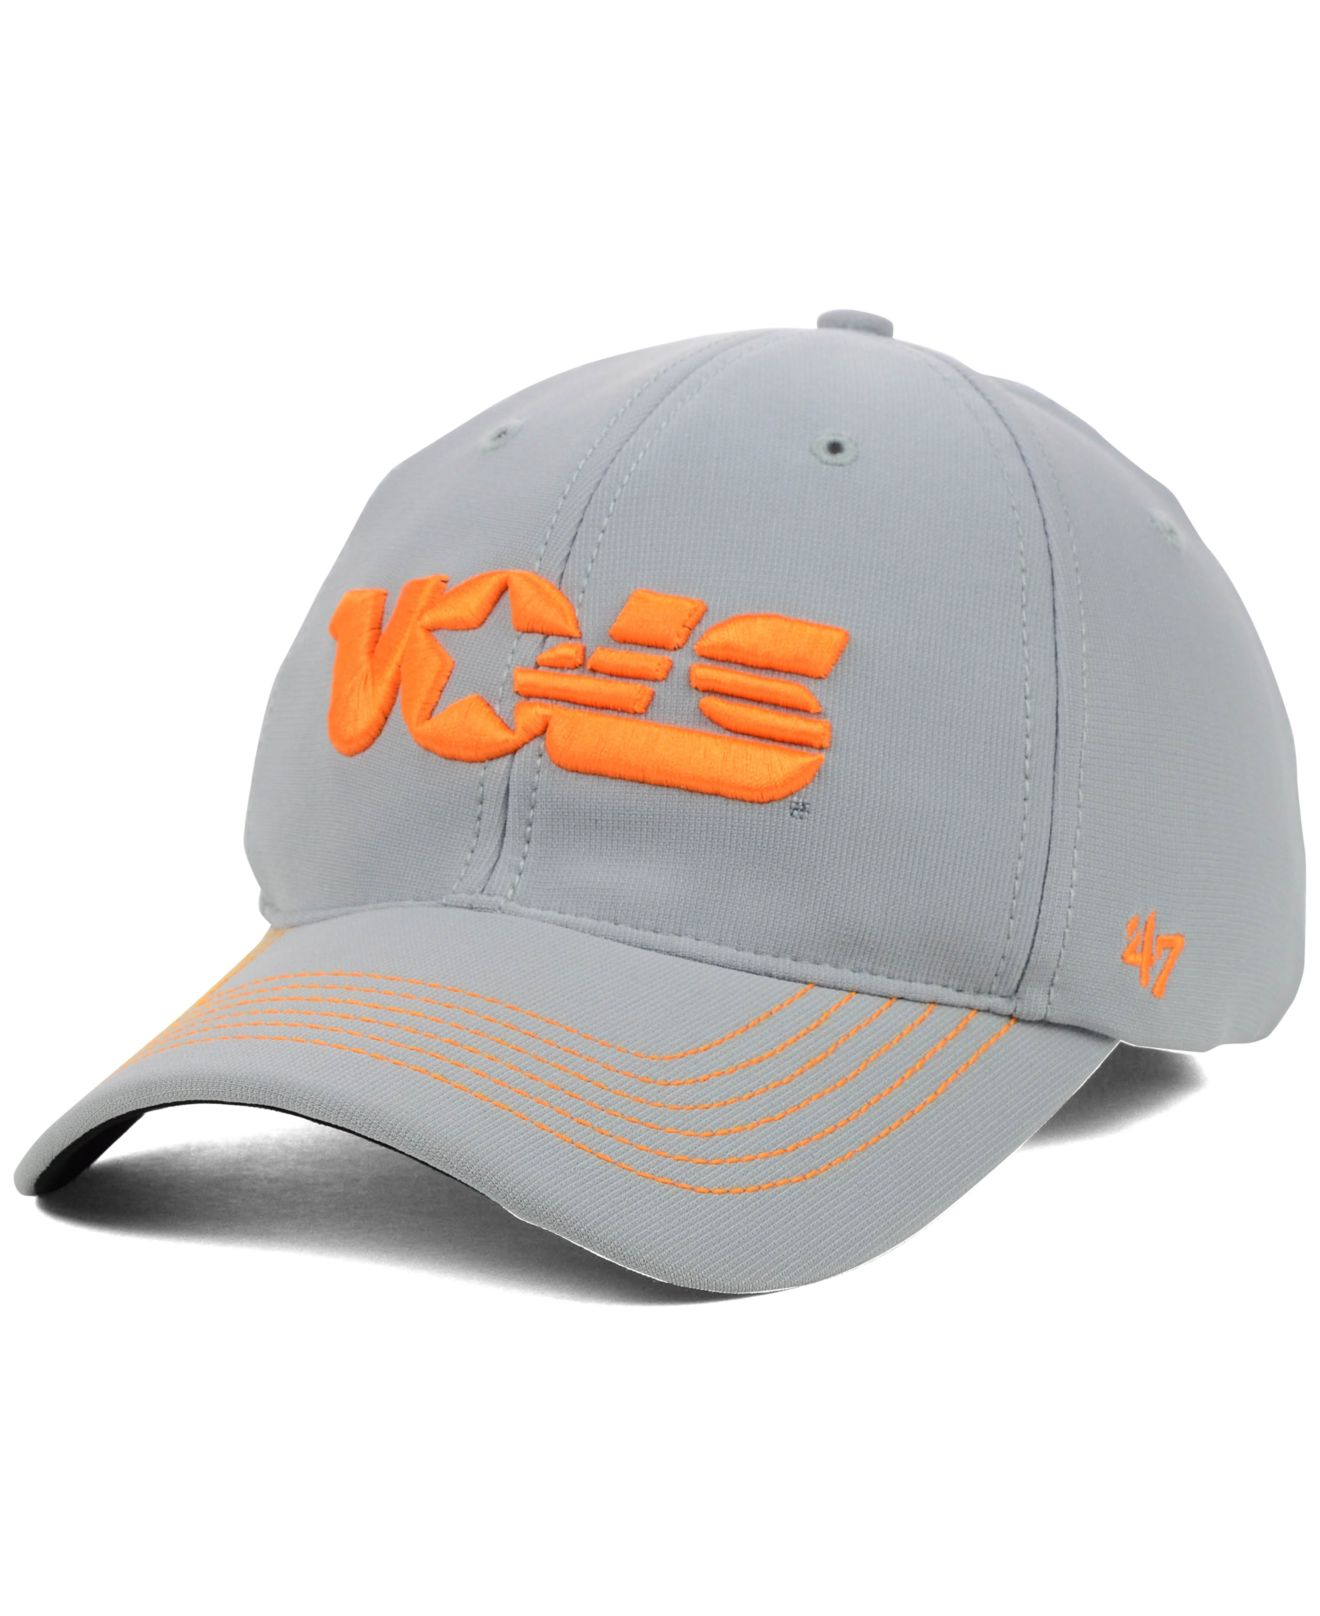 7de83a531492e ... shopping lyst 47 brand tennessee volunteers game time closer cap in  gray 48a4e 0e0bd